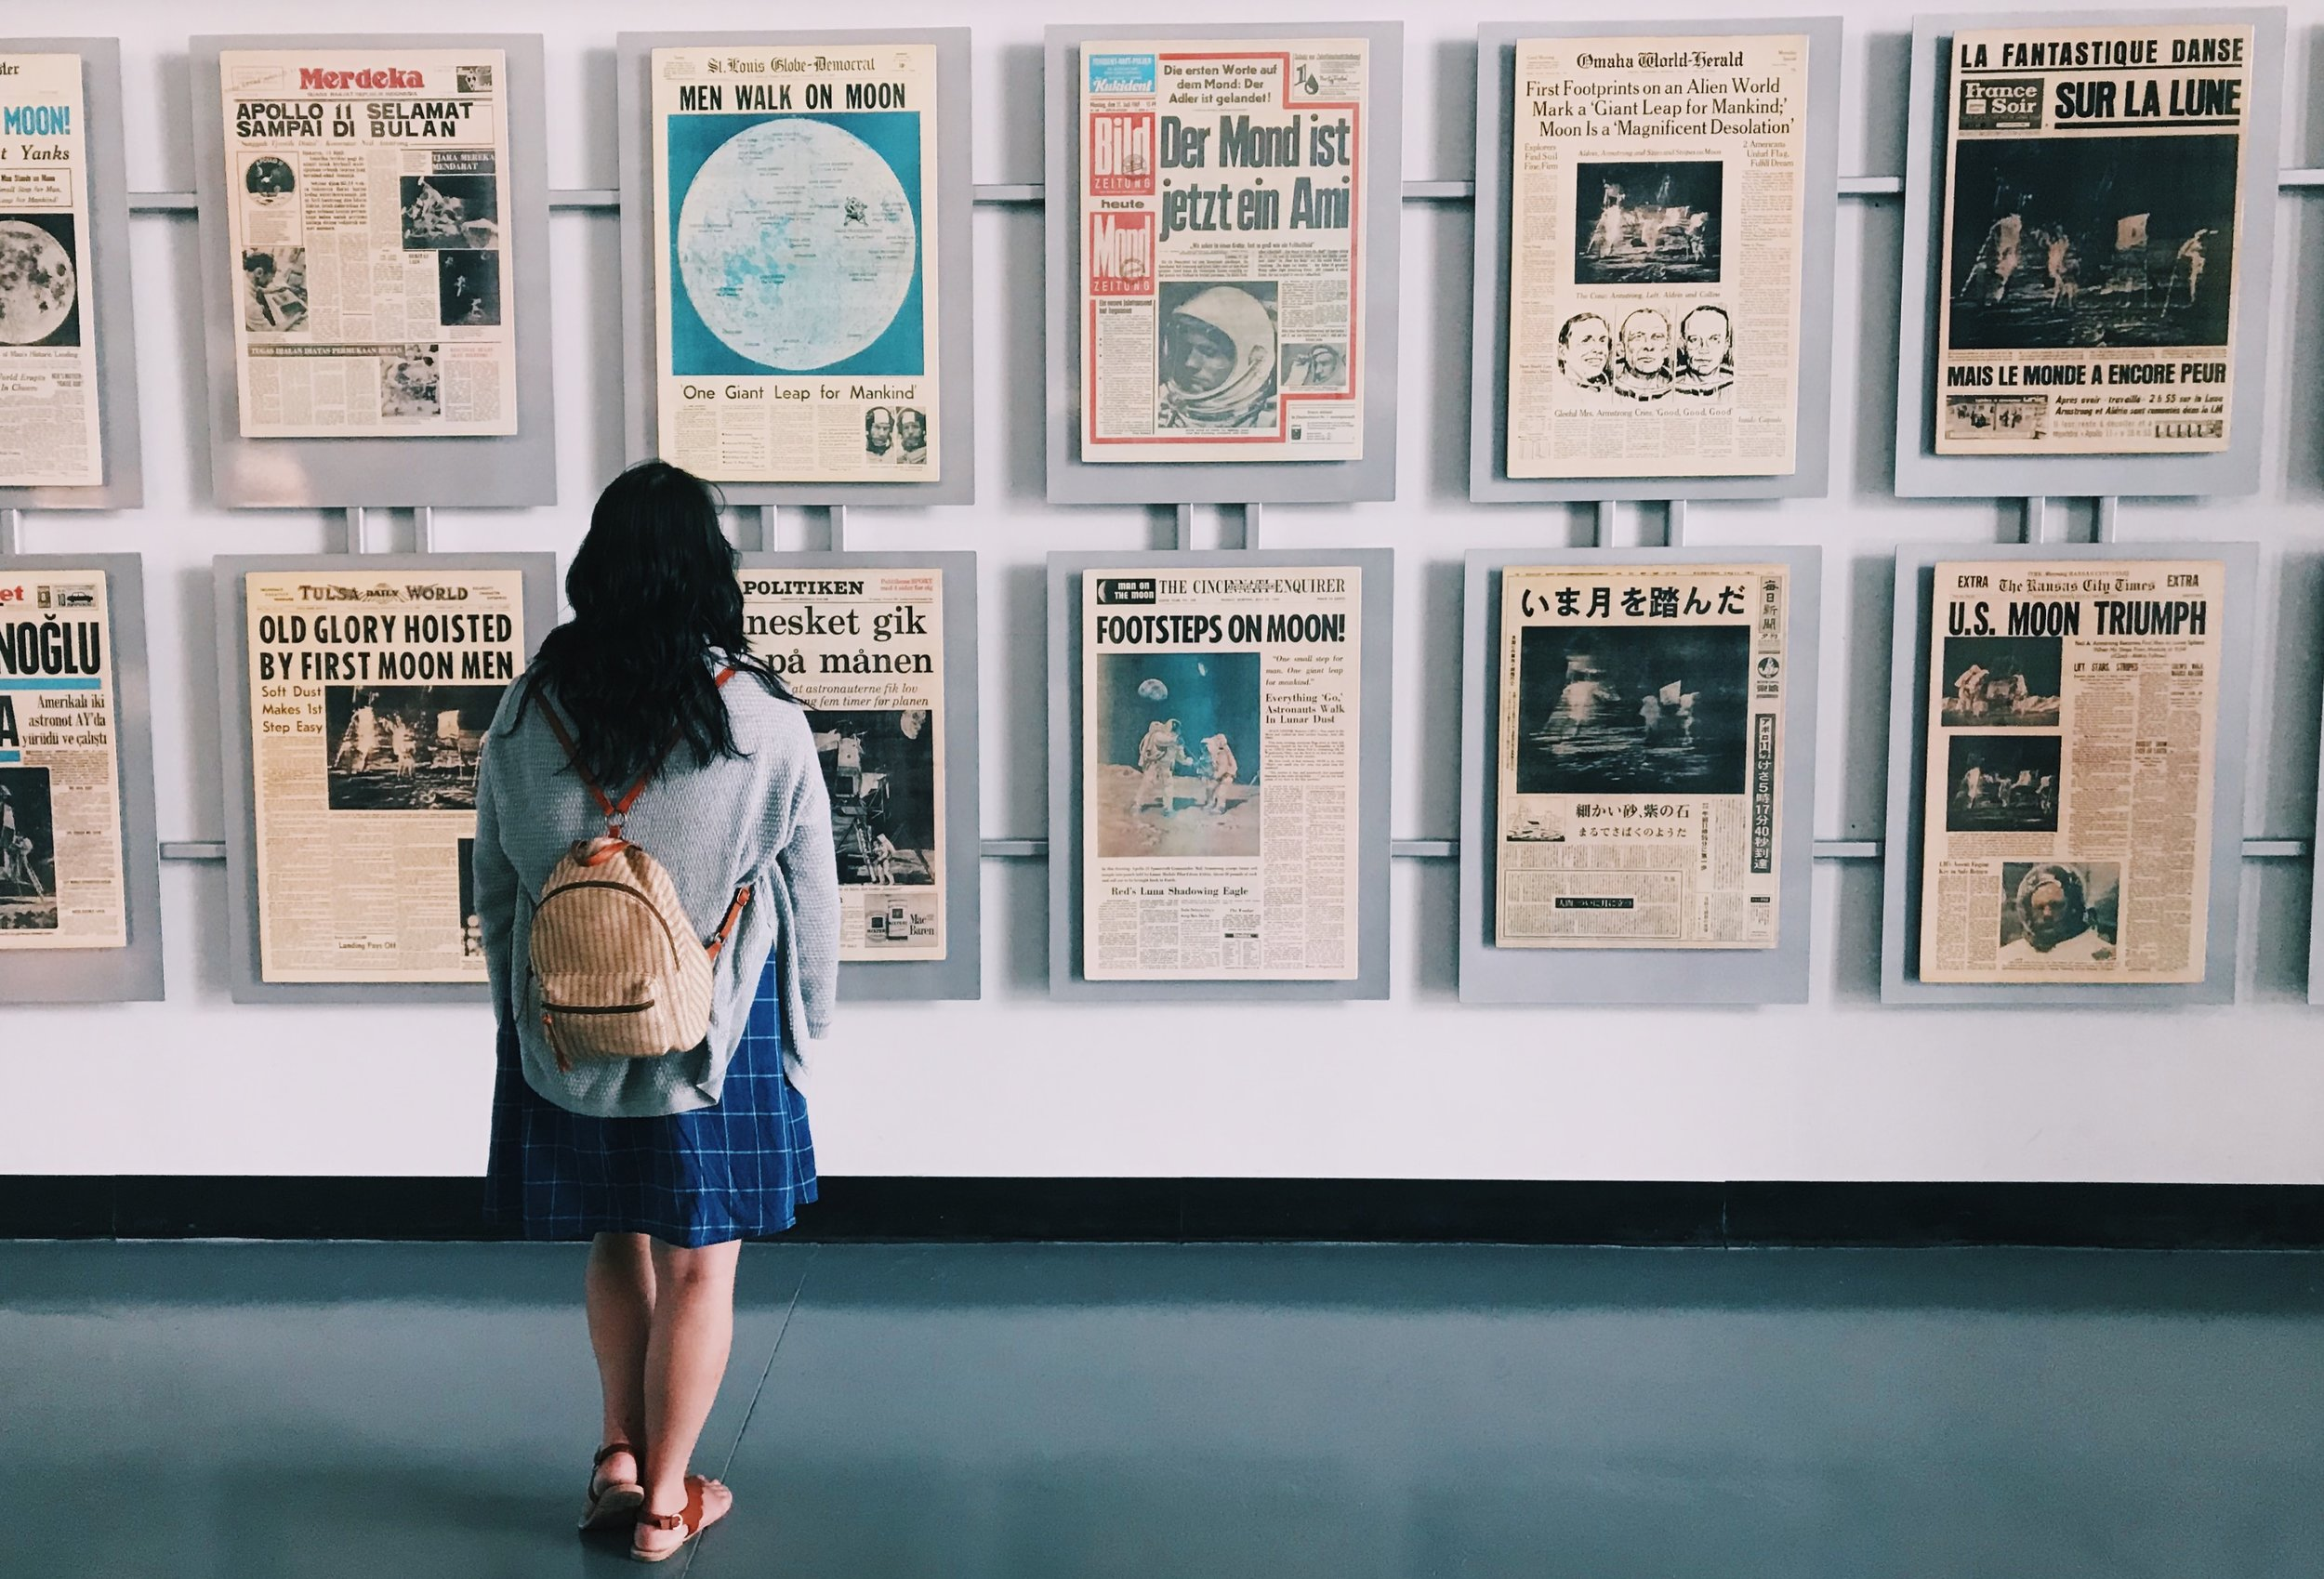 They had this really cool wall of newspaper headlines from when the U.S. was in the race to the moon.